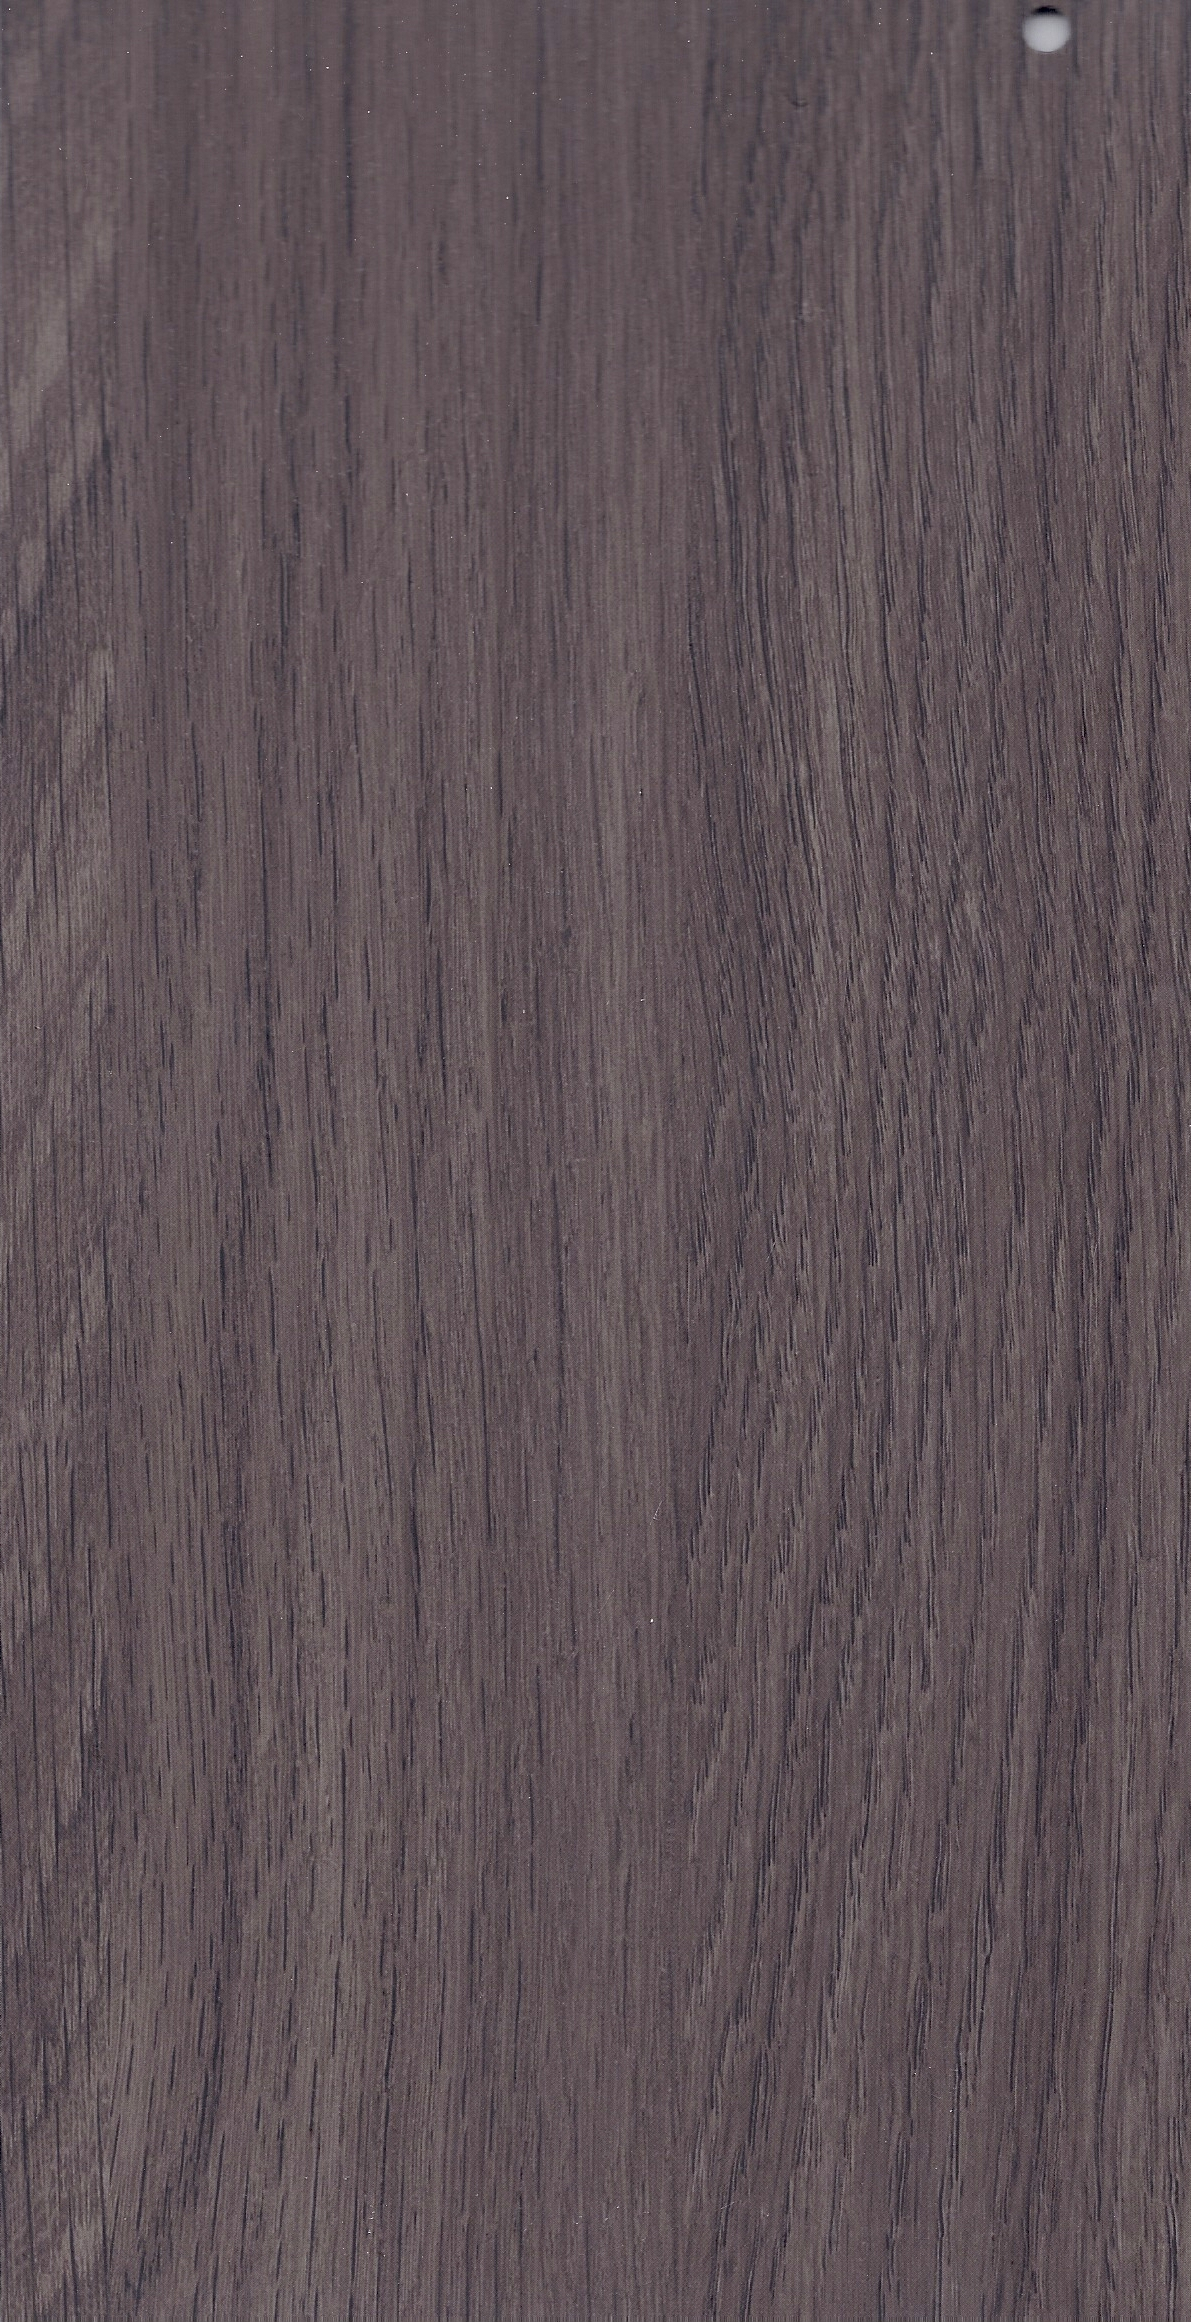 Vinyl Flooring Product : Mm vinyl flooring products a t